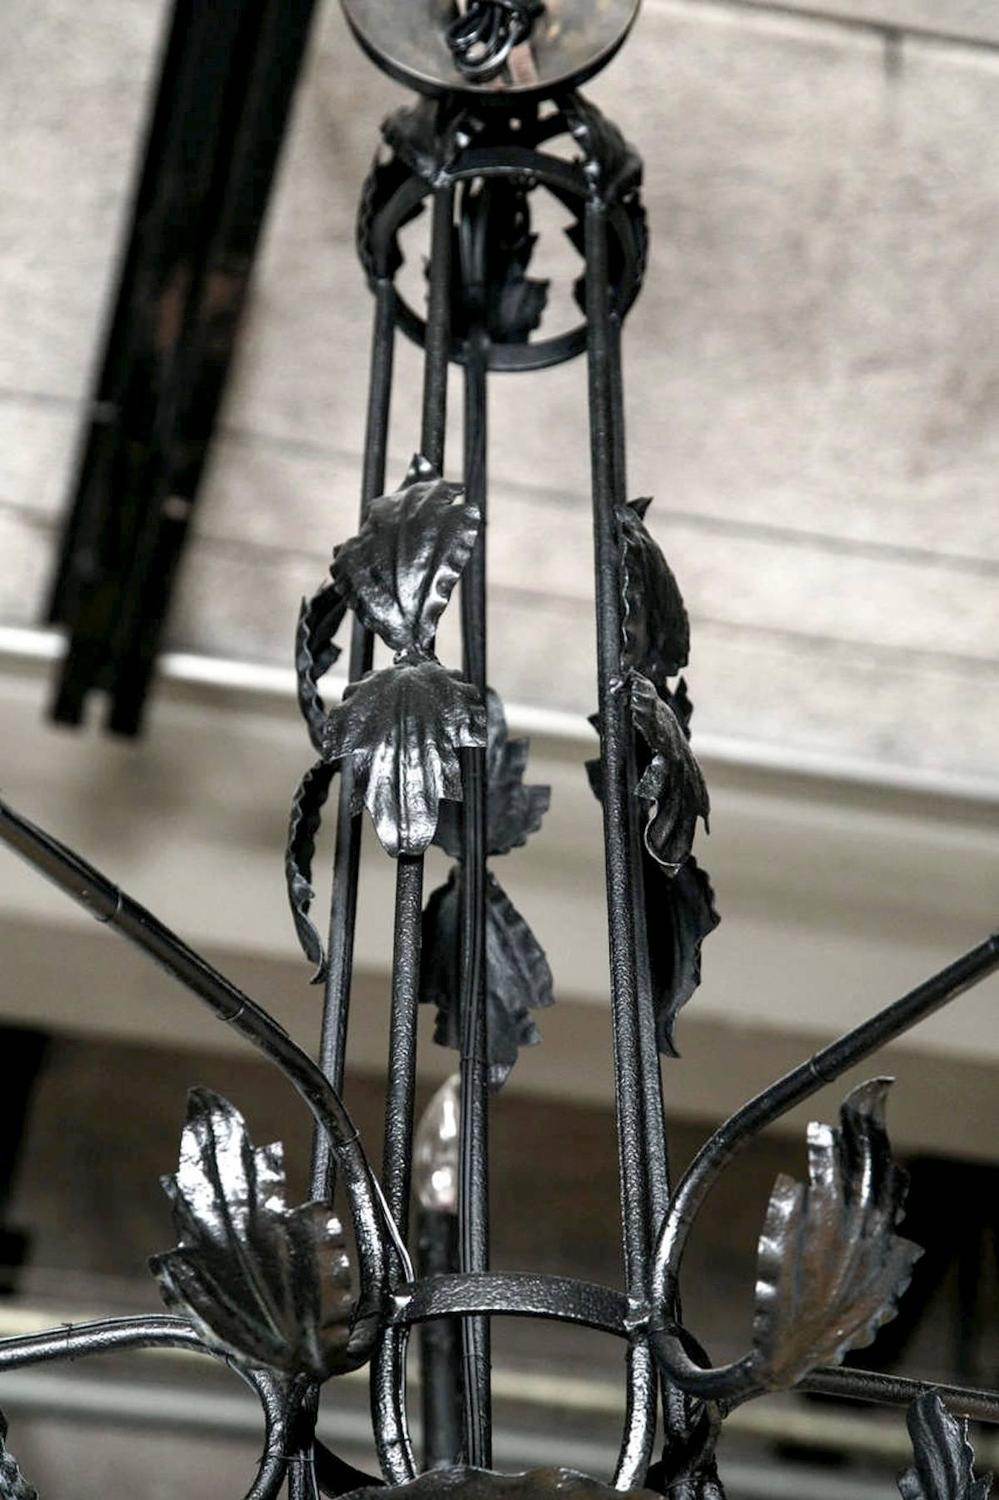 Black Wrought Iron Leaf Chandelier 1930s For Sale at 1stdibs